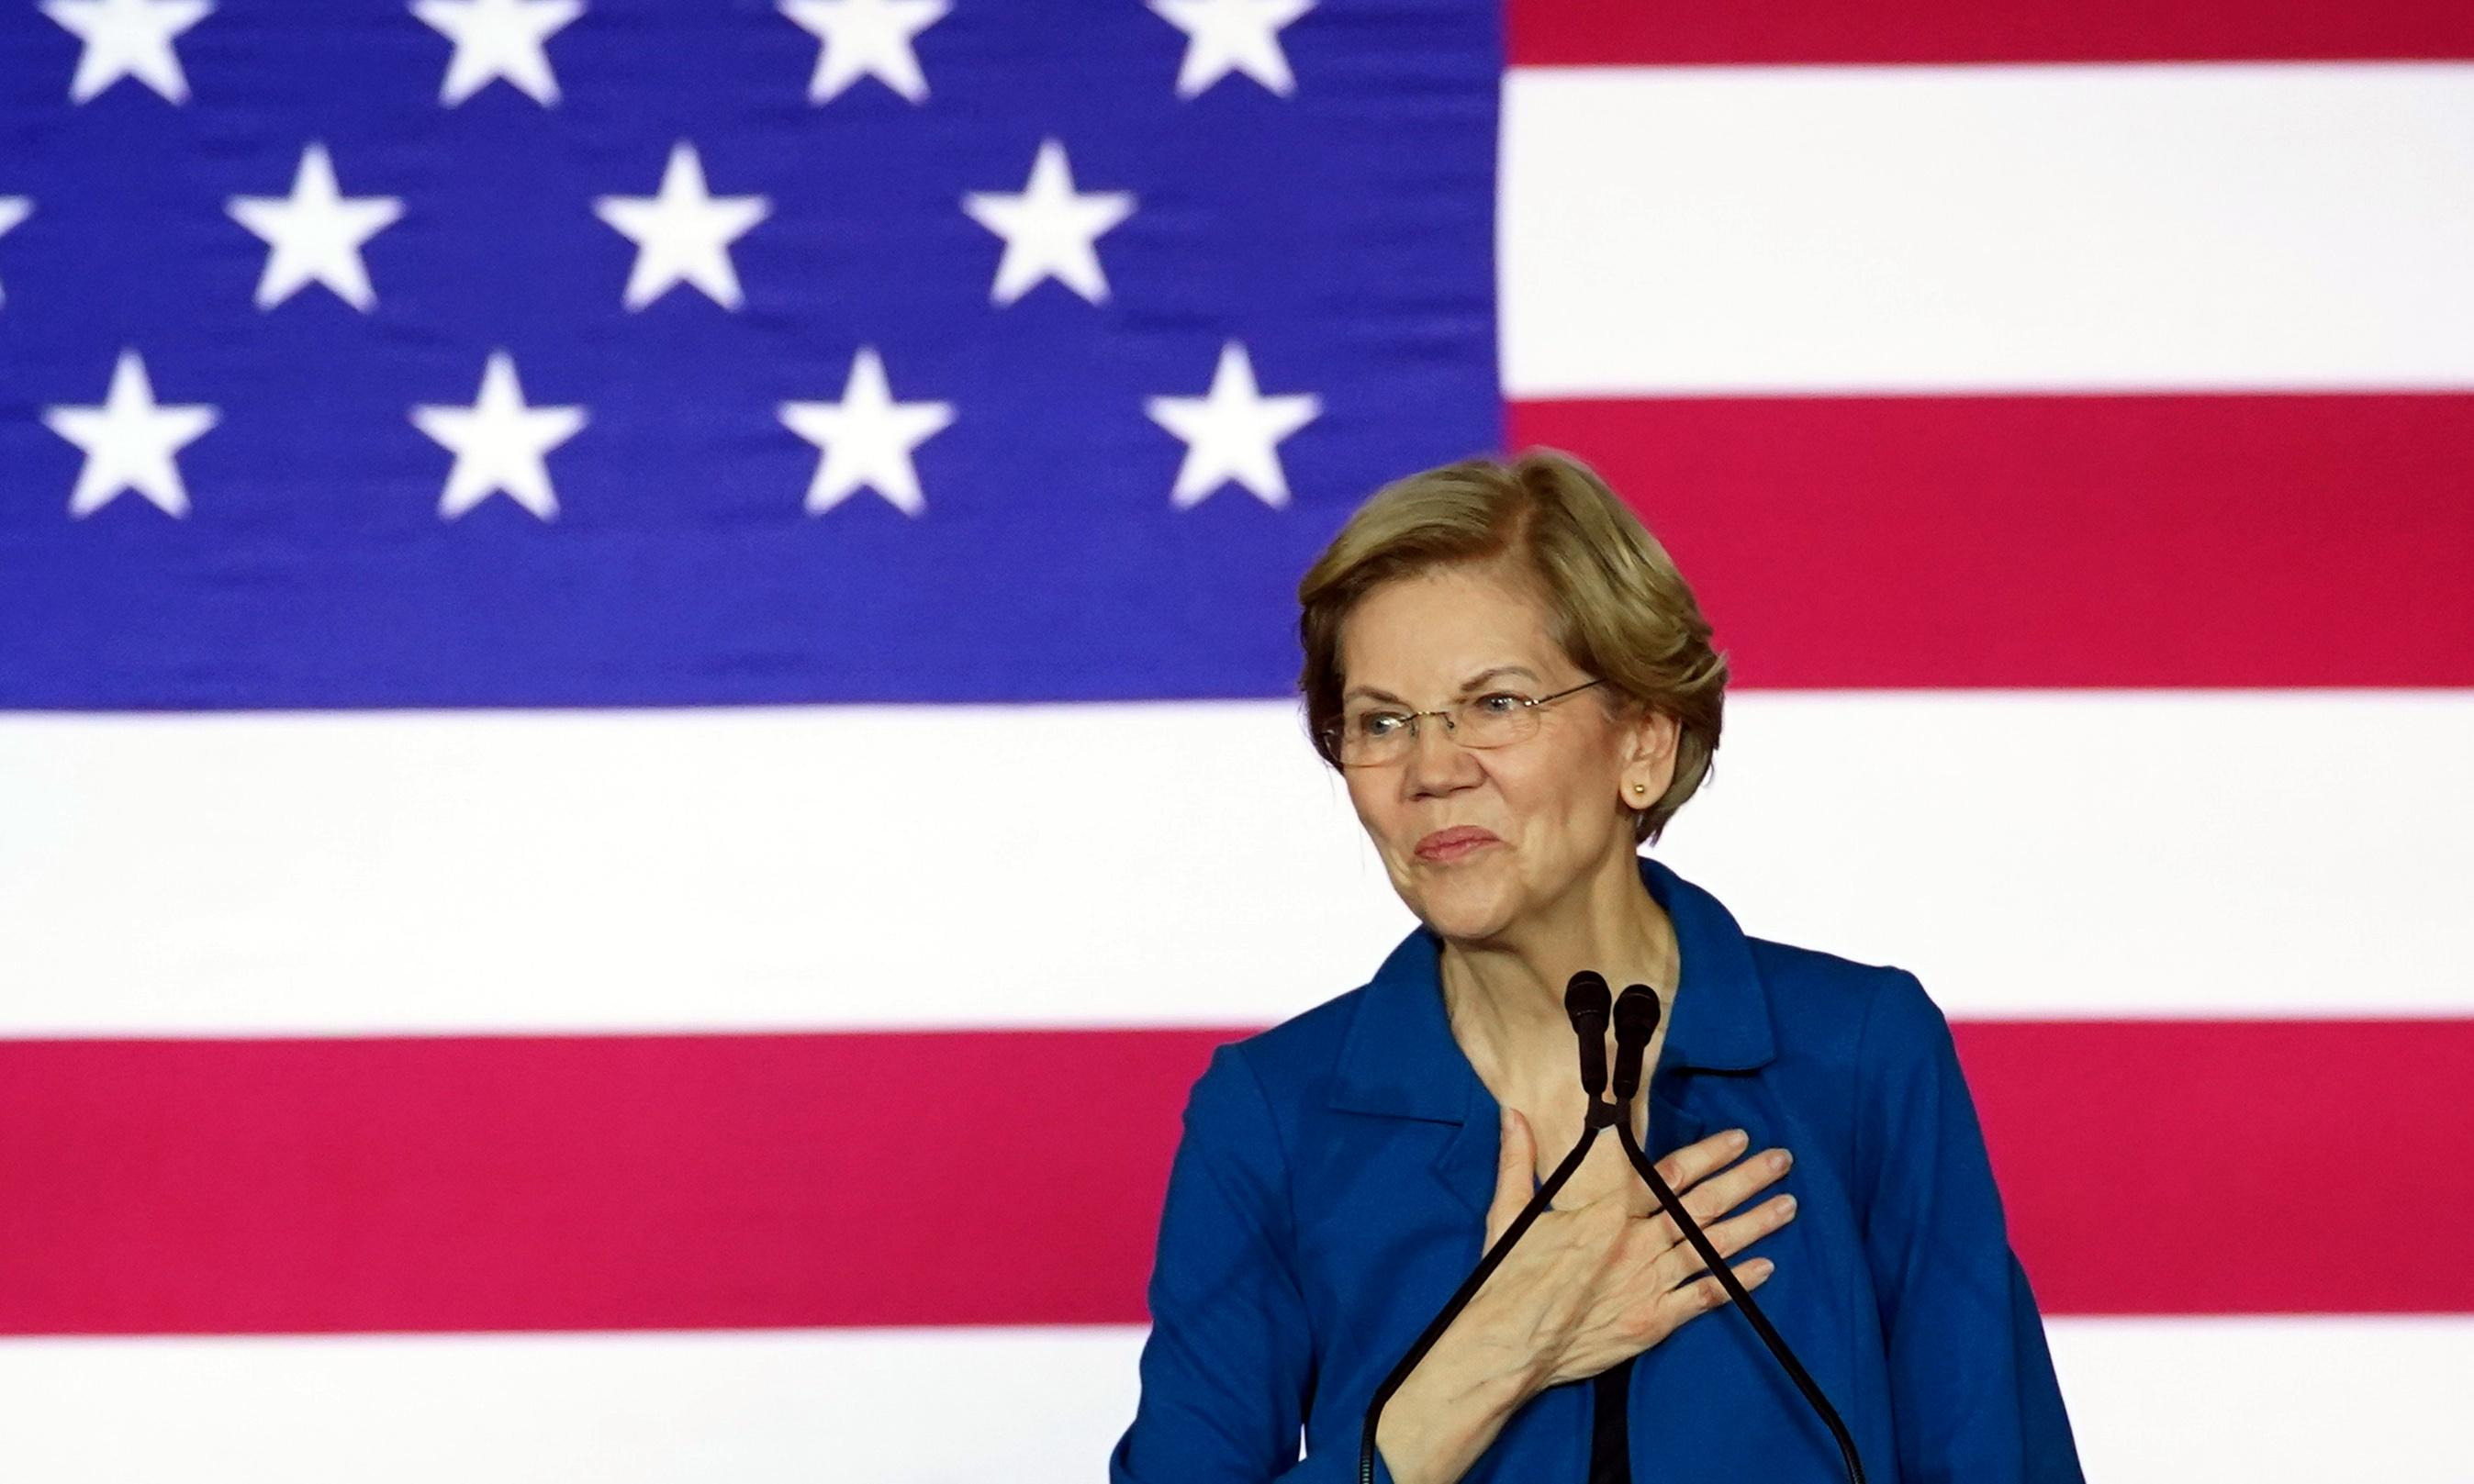 After a disappointing start, where does Elizabeth Warren go from here?